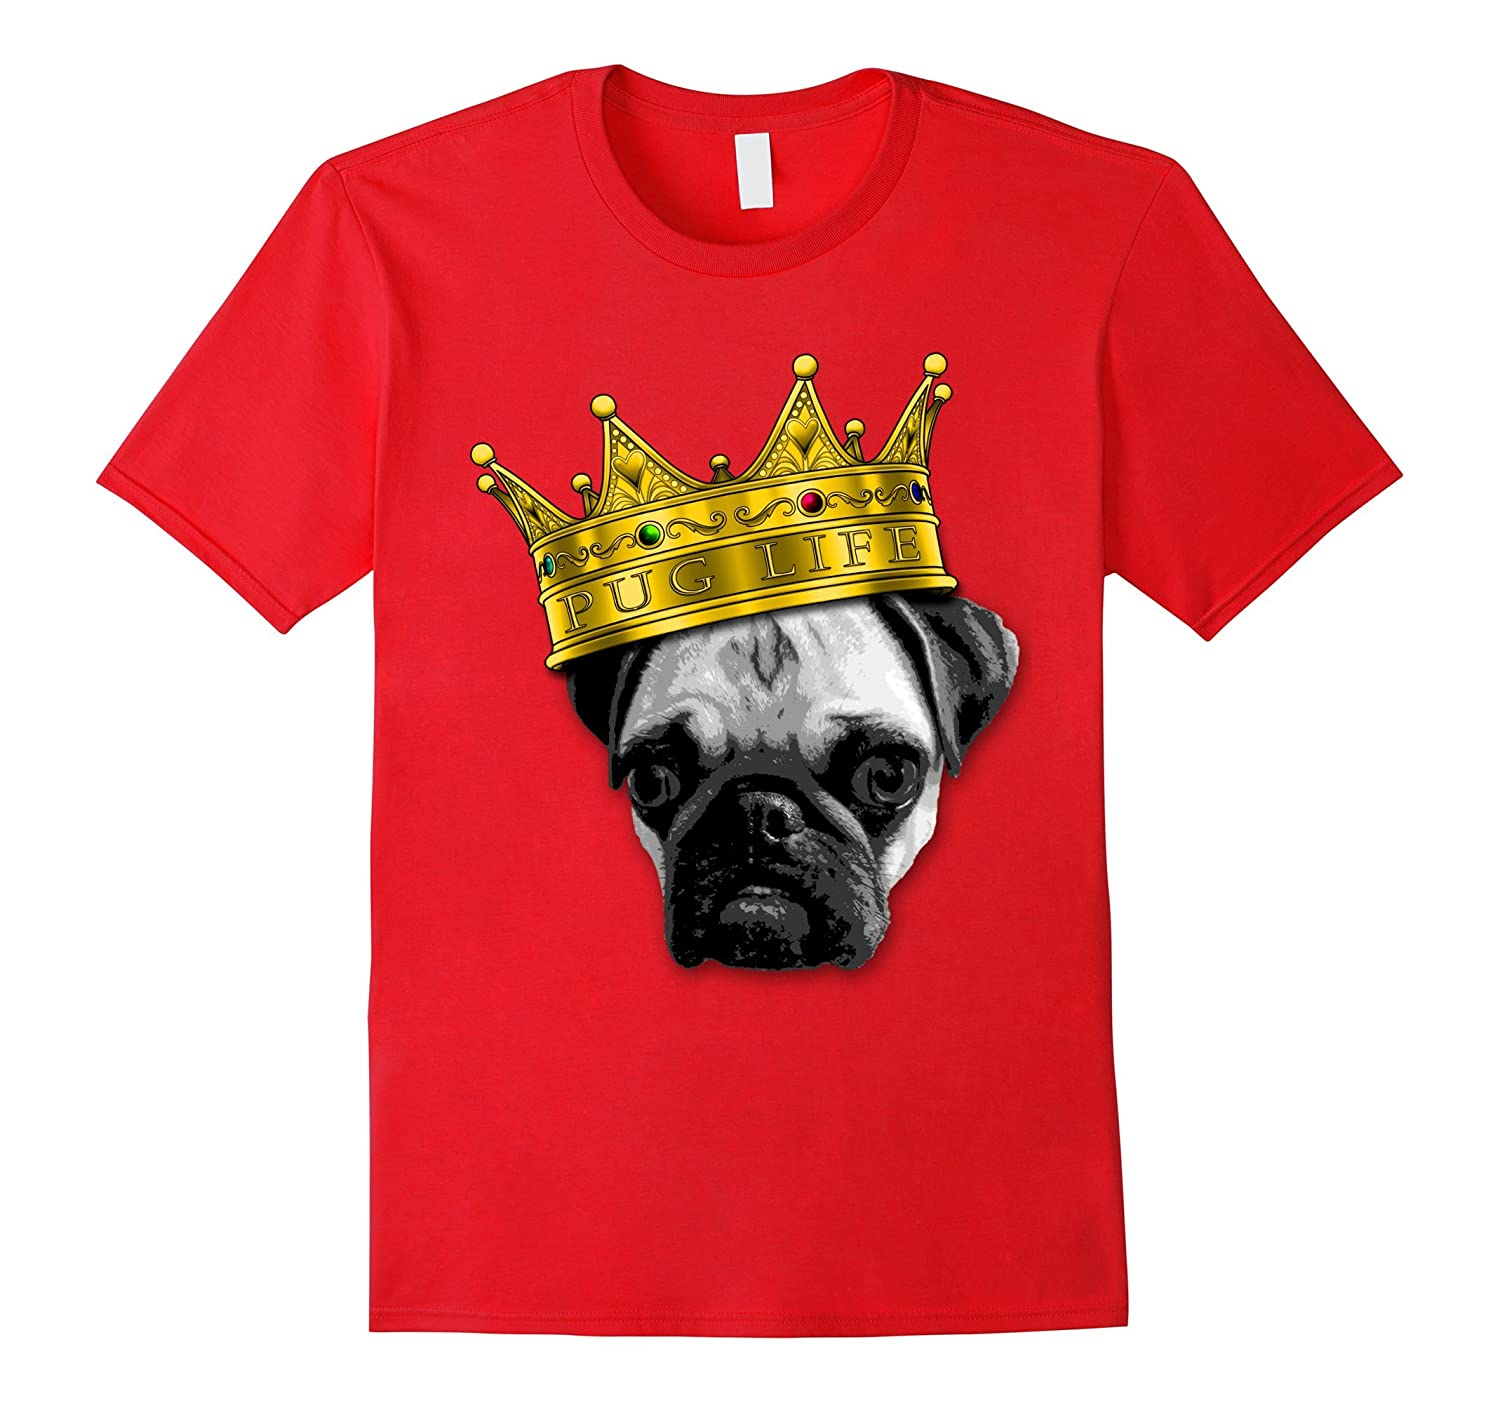 Pugs 4 Life King Top Dog W Crown Funny Tshirt K 9 Puglife